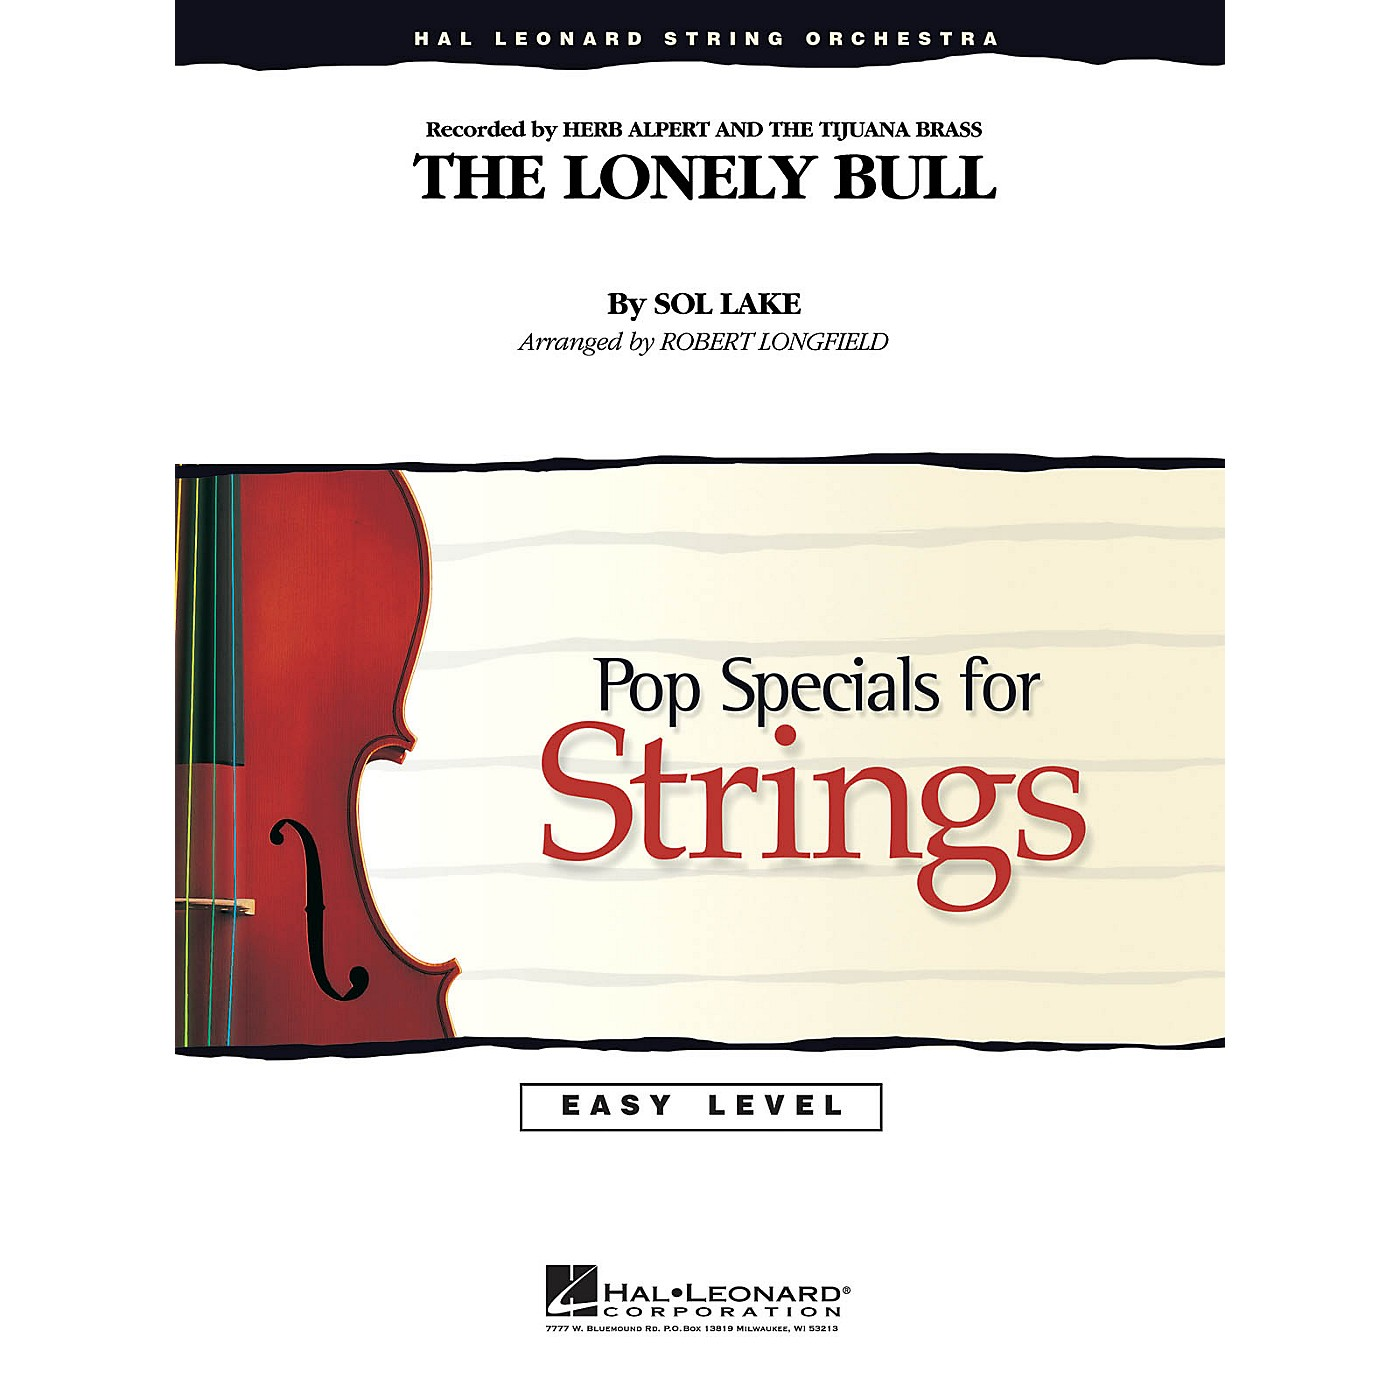 Hal Leonard The Lonely Bull Easy Pop Specials For Strings Series by Herb Alpert Arranged by Robert Longfield thumbnail